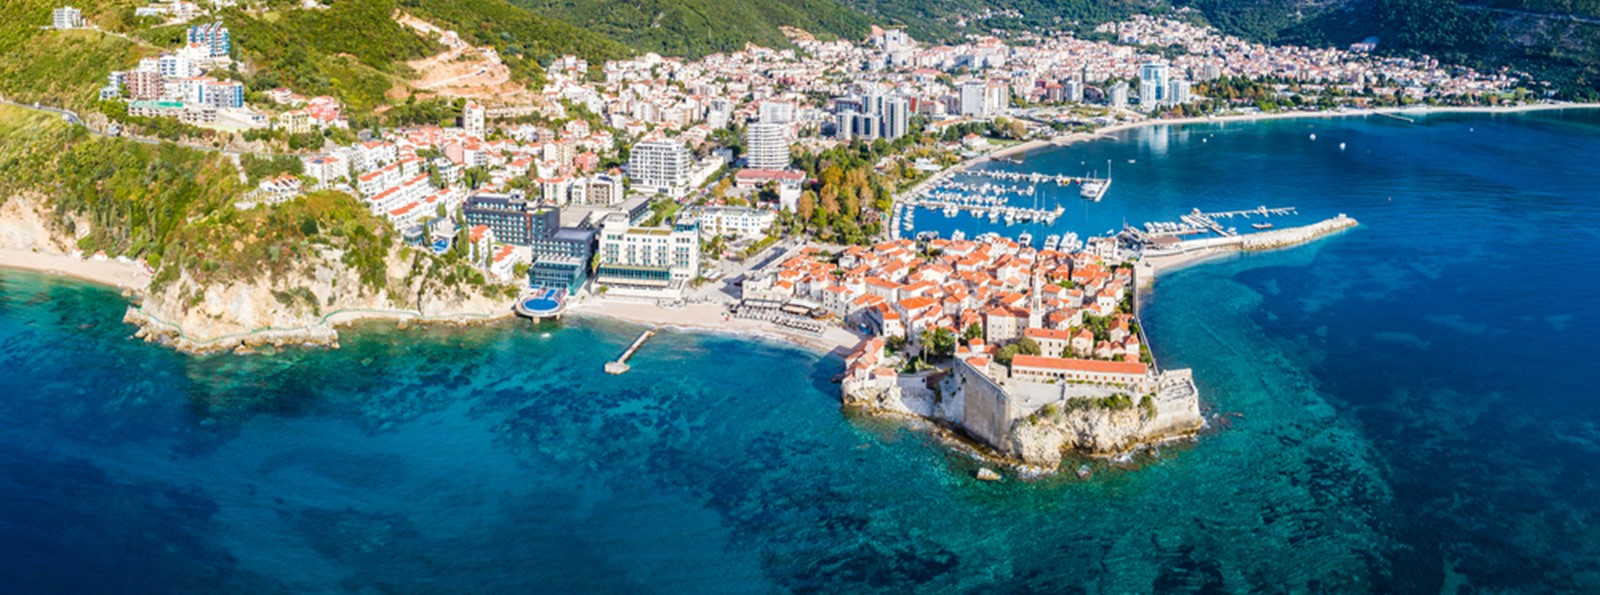 Montenegro - The Adriatic's Best-Kept Secret